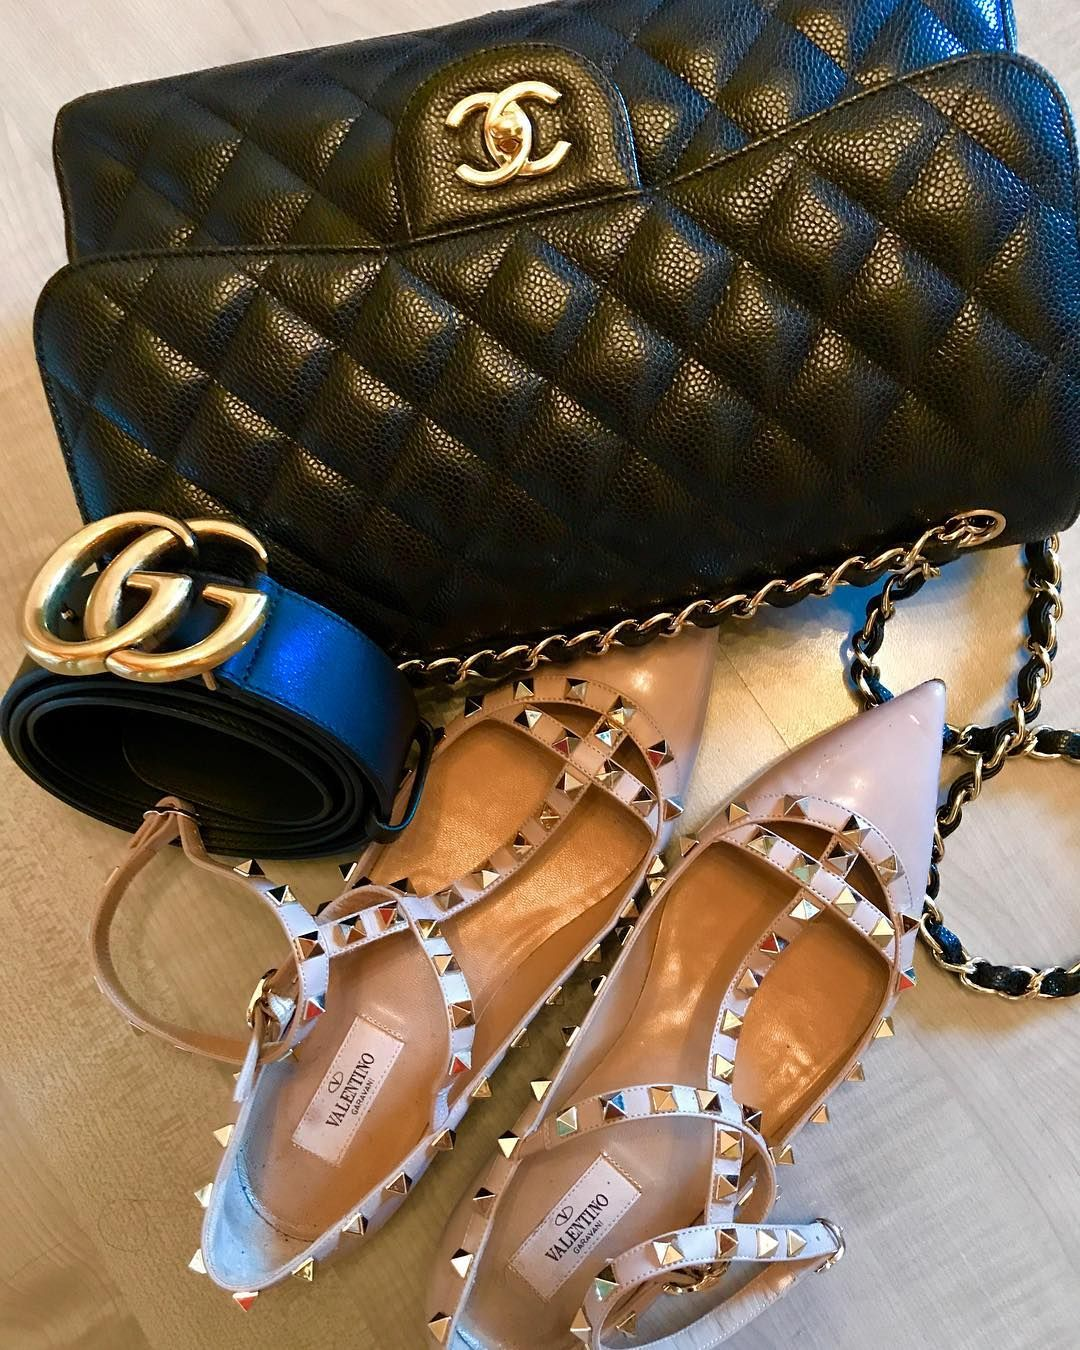 7c5827472640eb Chanel Flap Bag & Gucci Belt in Black & Valentino Shoe For Women. Best  Accessories To Keep Fashion Everyday.